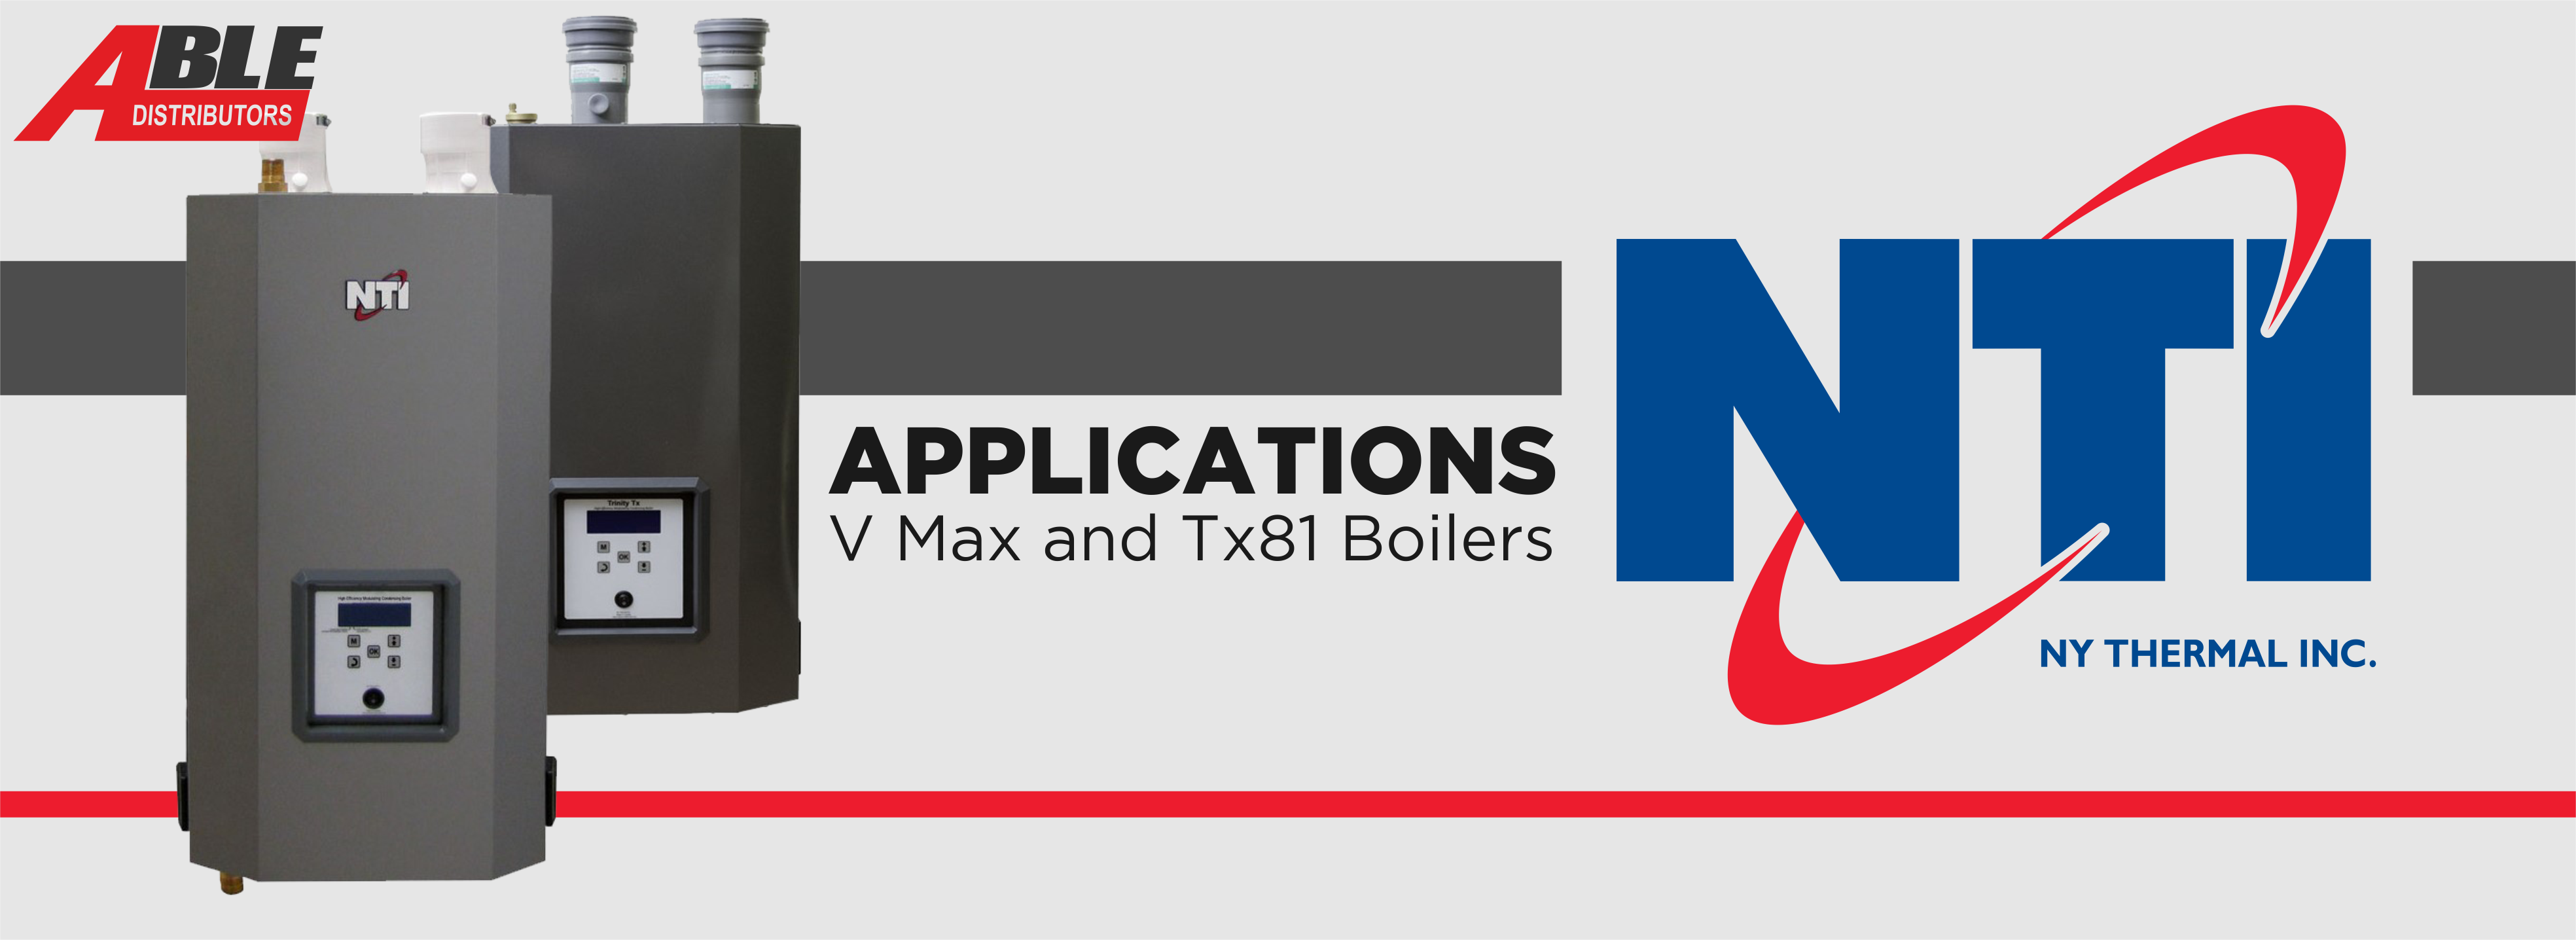 Versatility on display ntis vmax and tx boilers able distributors by myles kleeman sciox Choice Image